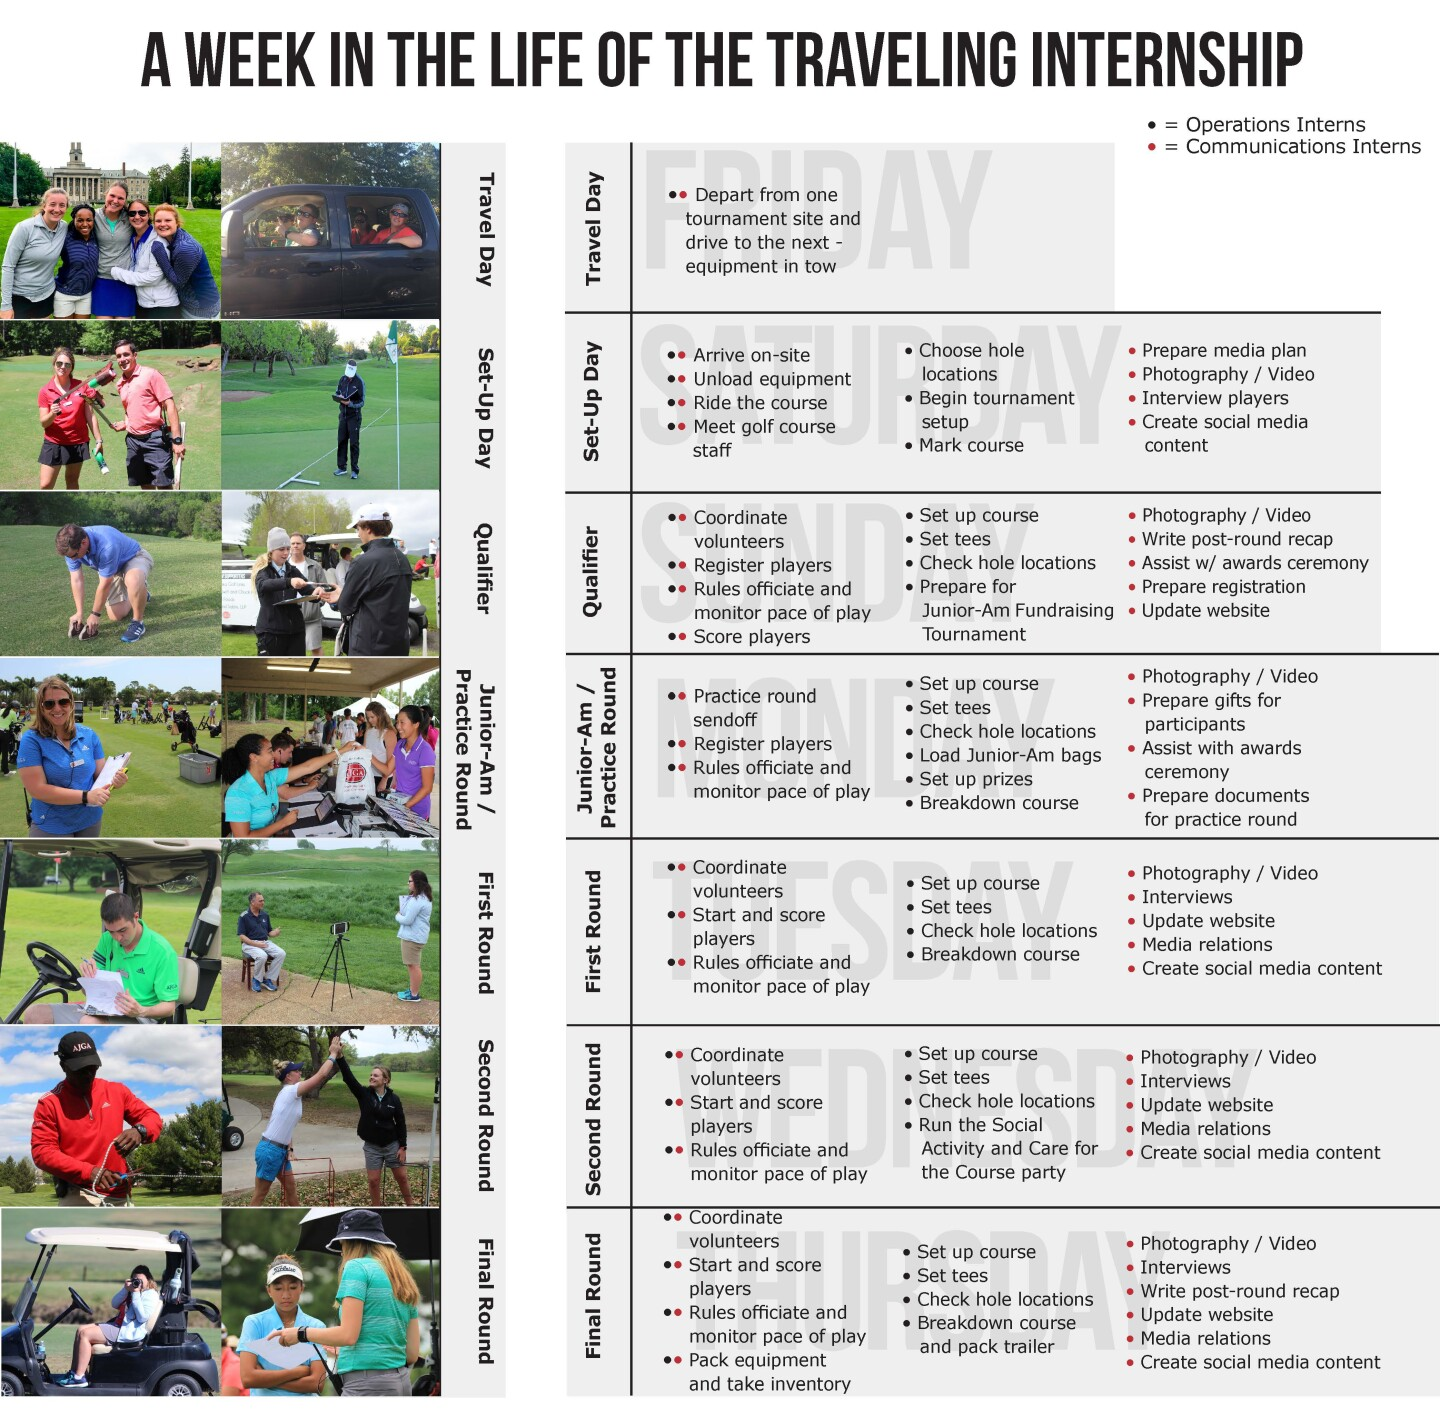 A week in the life page